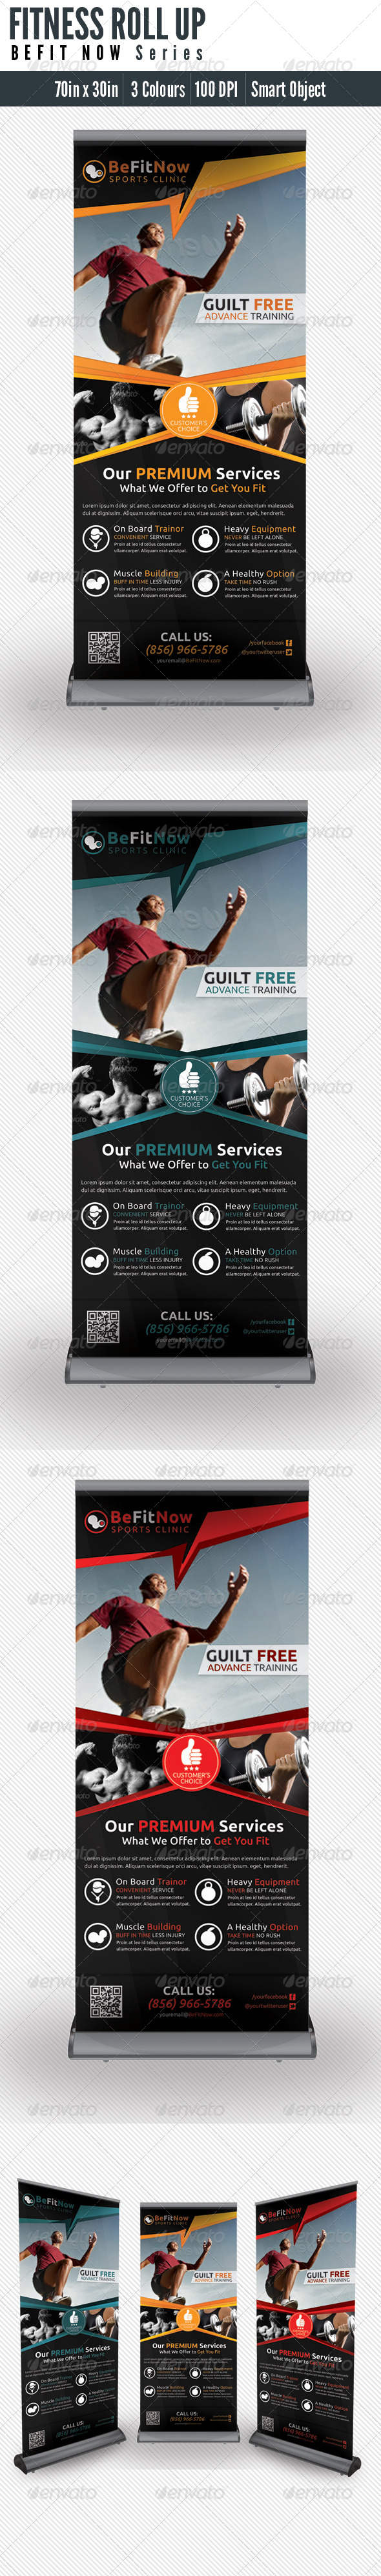 GraphicRiver Fitness Roll UP Banner 5120170